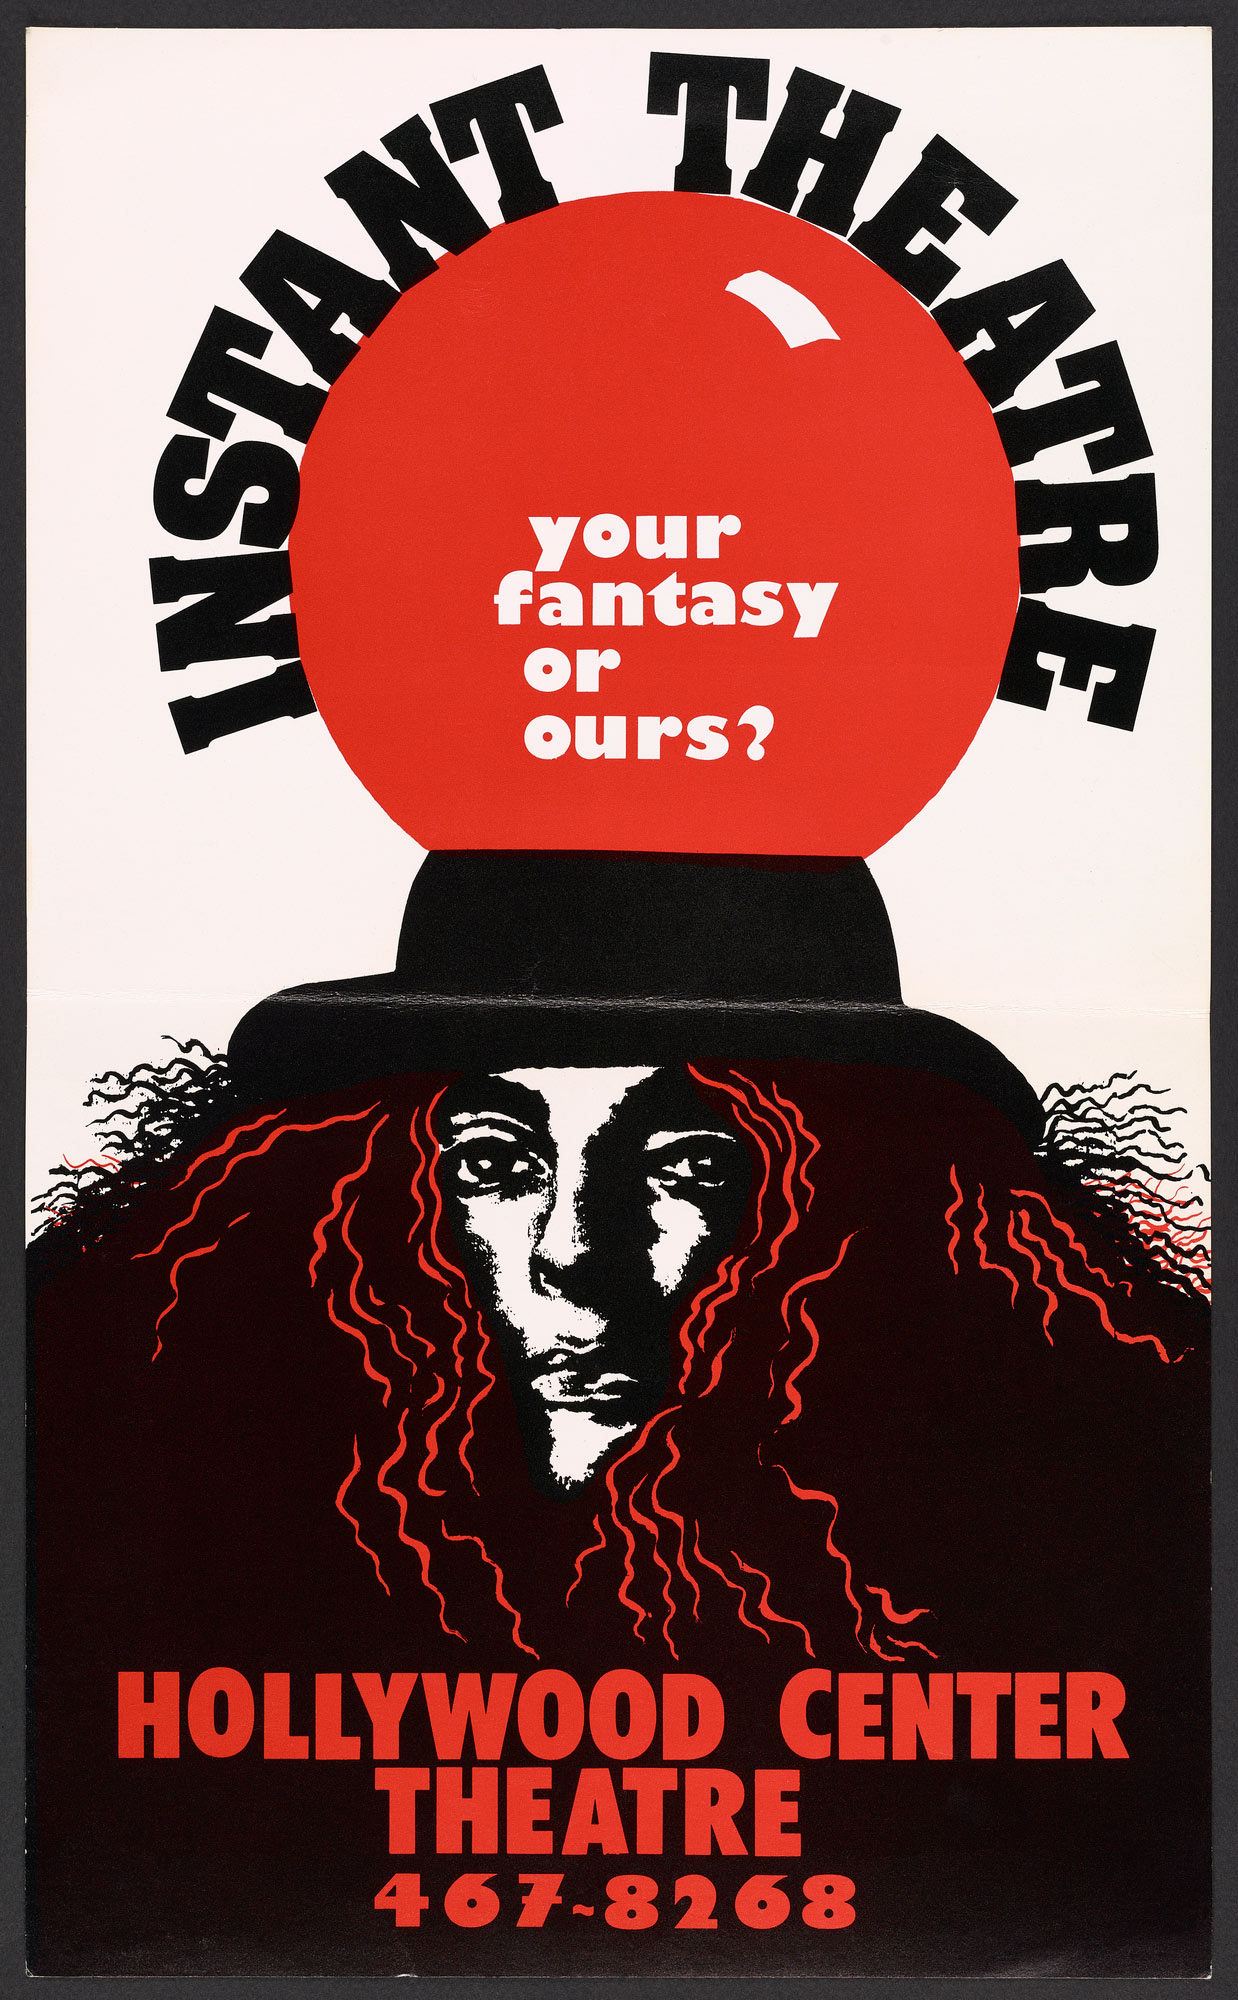 Instant Theatre: your fantasy or ours?